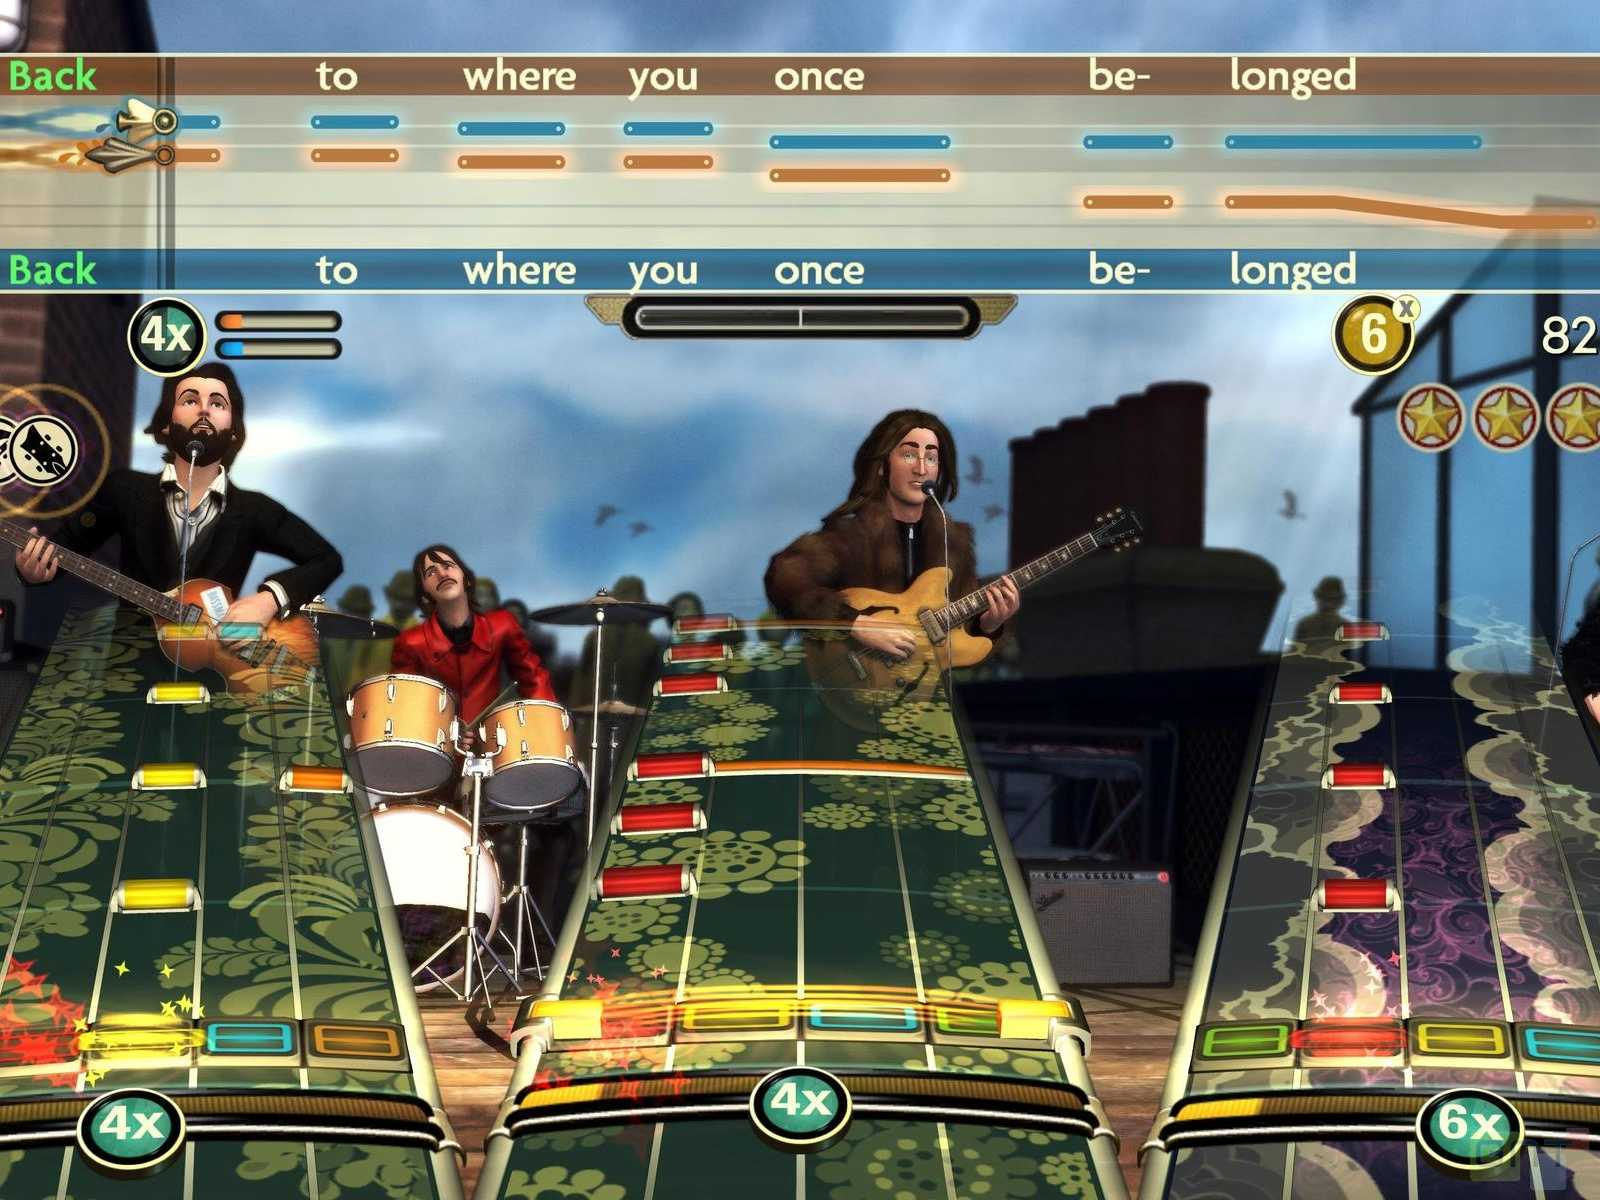 The Daily Beatle: The Beatles RockBand decrypted